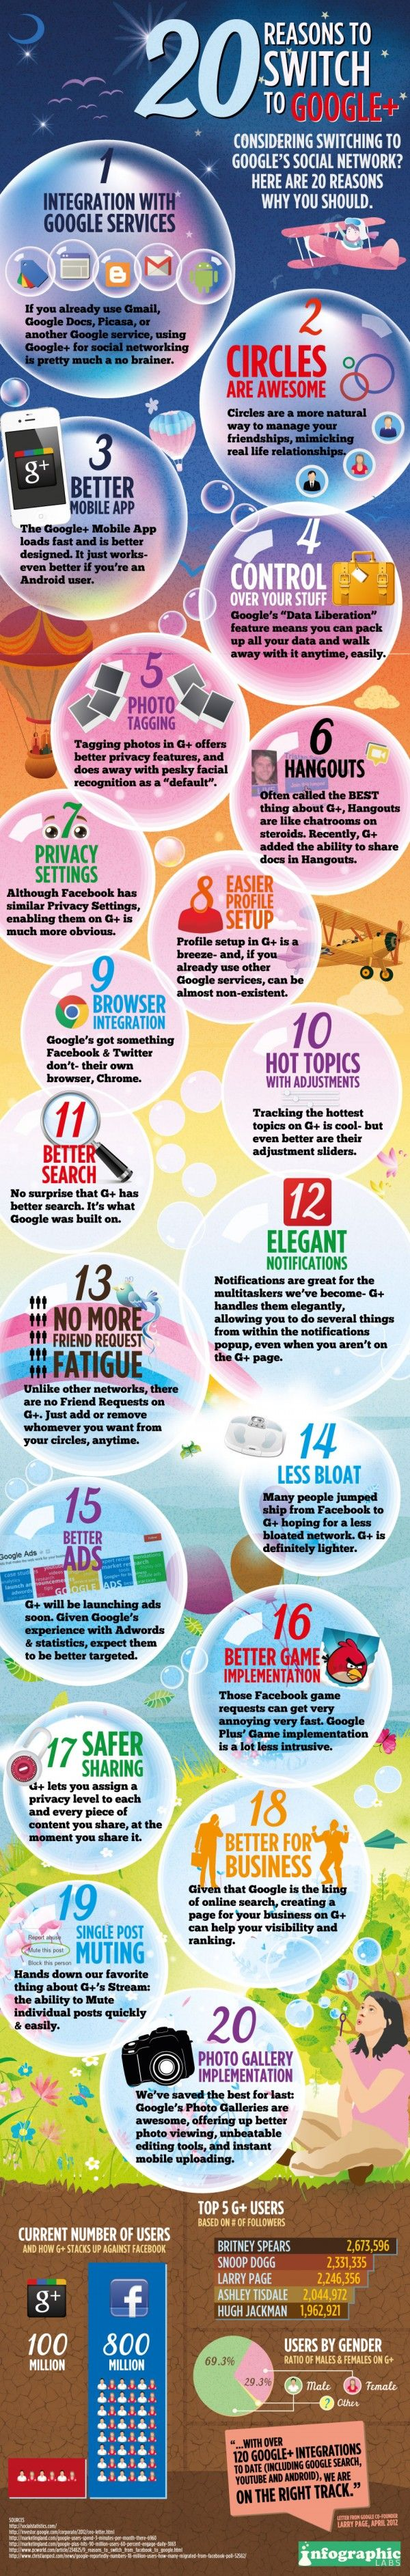 20 reasons why your #brand should use #google+ : features, data, security, users by gender: Social Network, Fun Recipes, Social Media Marketing, Google, Switch, Blog, Infographic, Socialmedia, 20 Reasons